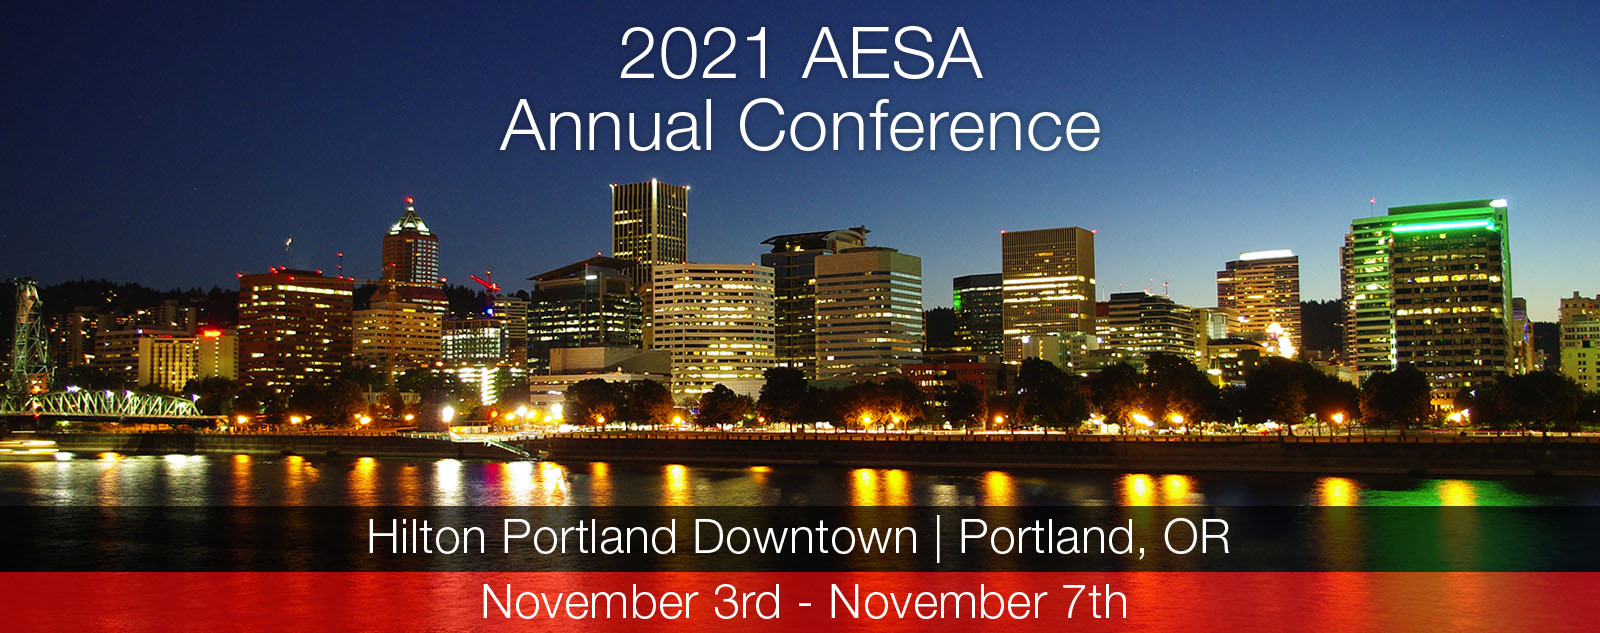 AESA 2021 Annual Conference, Portland OR, Hilton Portland Downtown, Nov 3rd thru Nov 7th